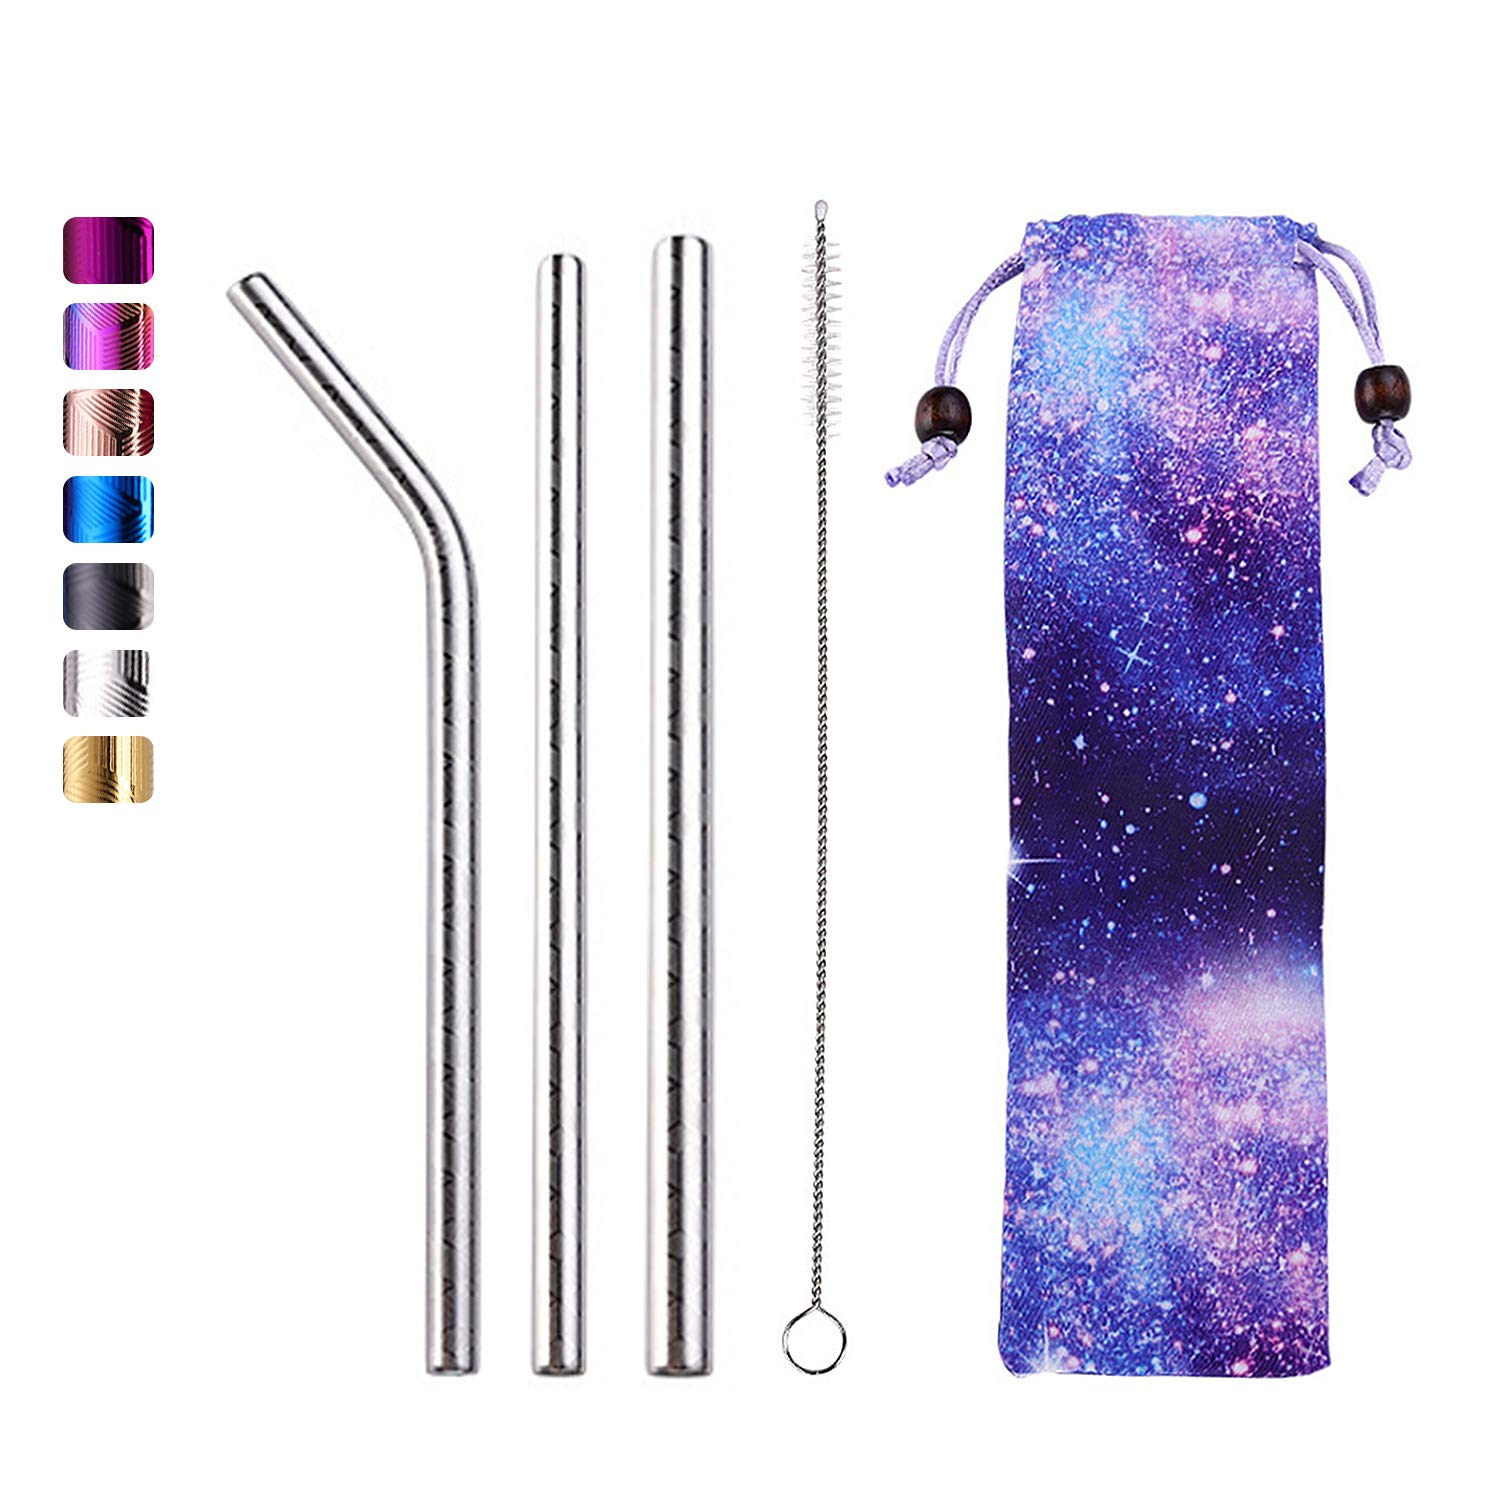 Reusable Metal Straws- Stainless Steel Straws- Portable Travel Drinking Straws for Tumplers- 3 Set